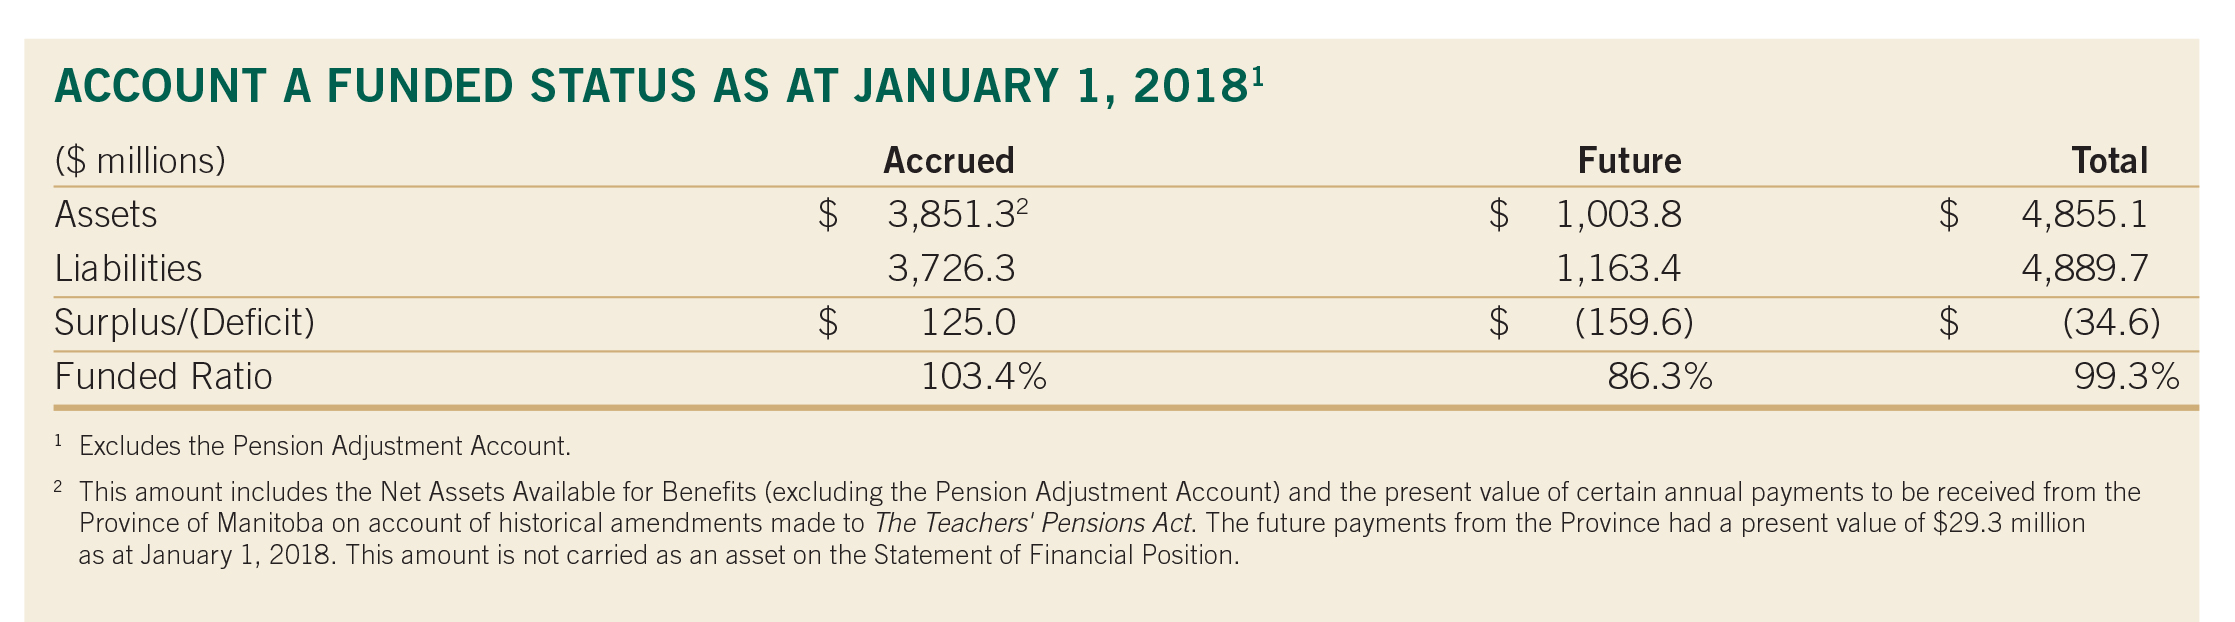 pg 24 Account A Funded Status as at Jan. 1 2018